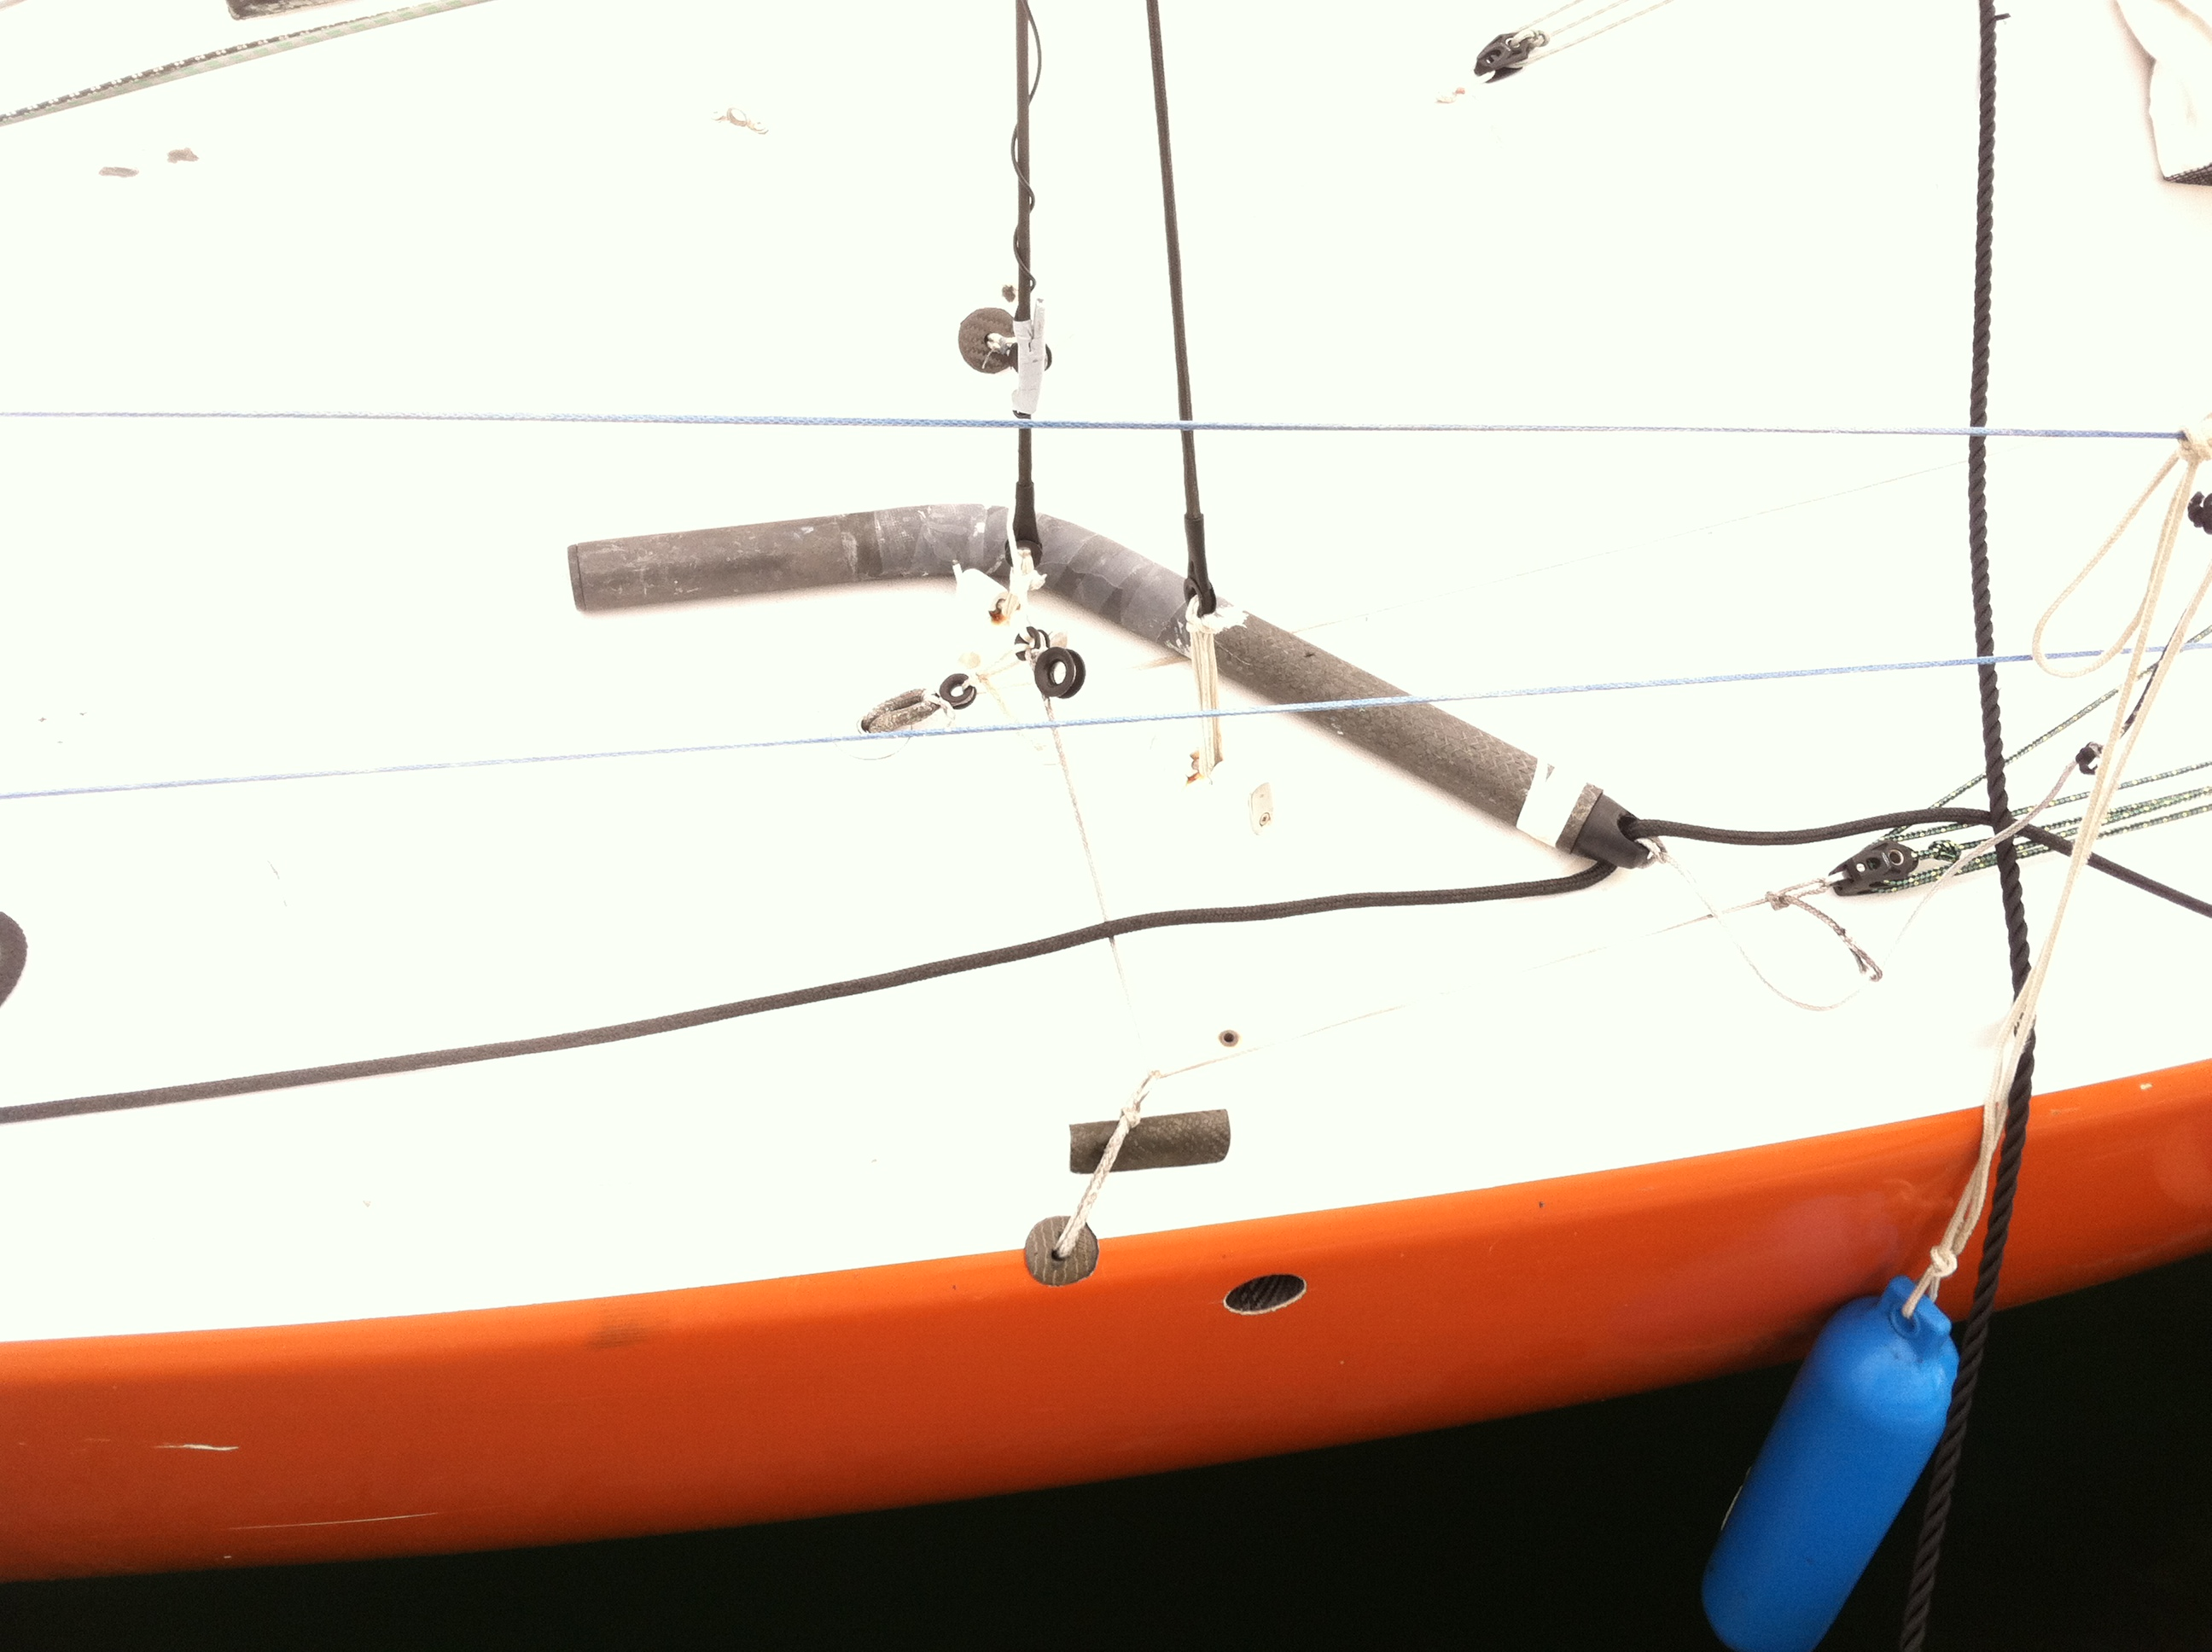 This image shows the hole in the side of the boat to accept the strut.